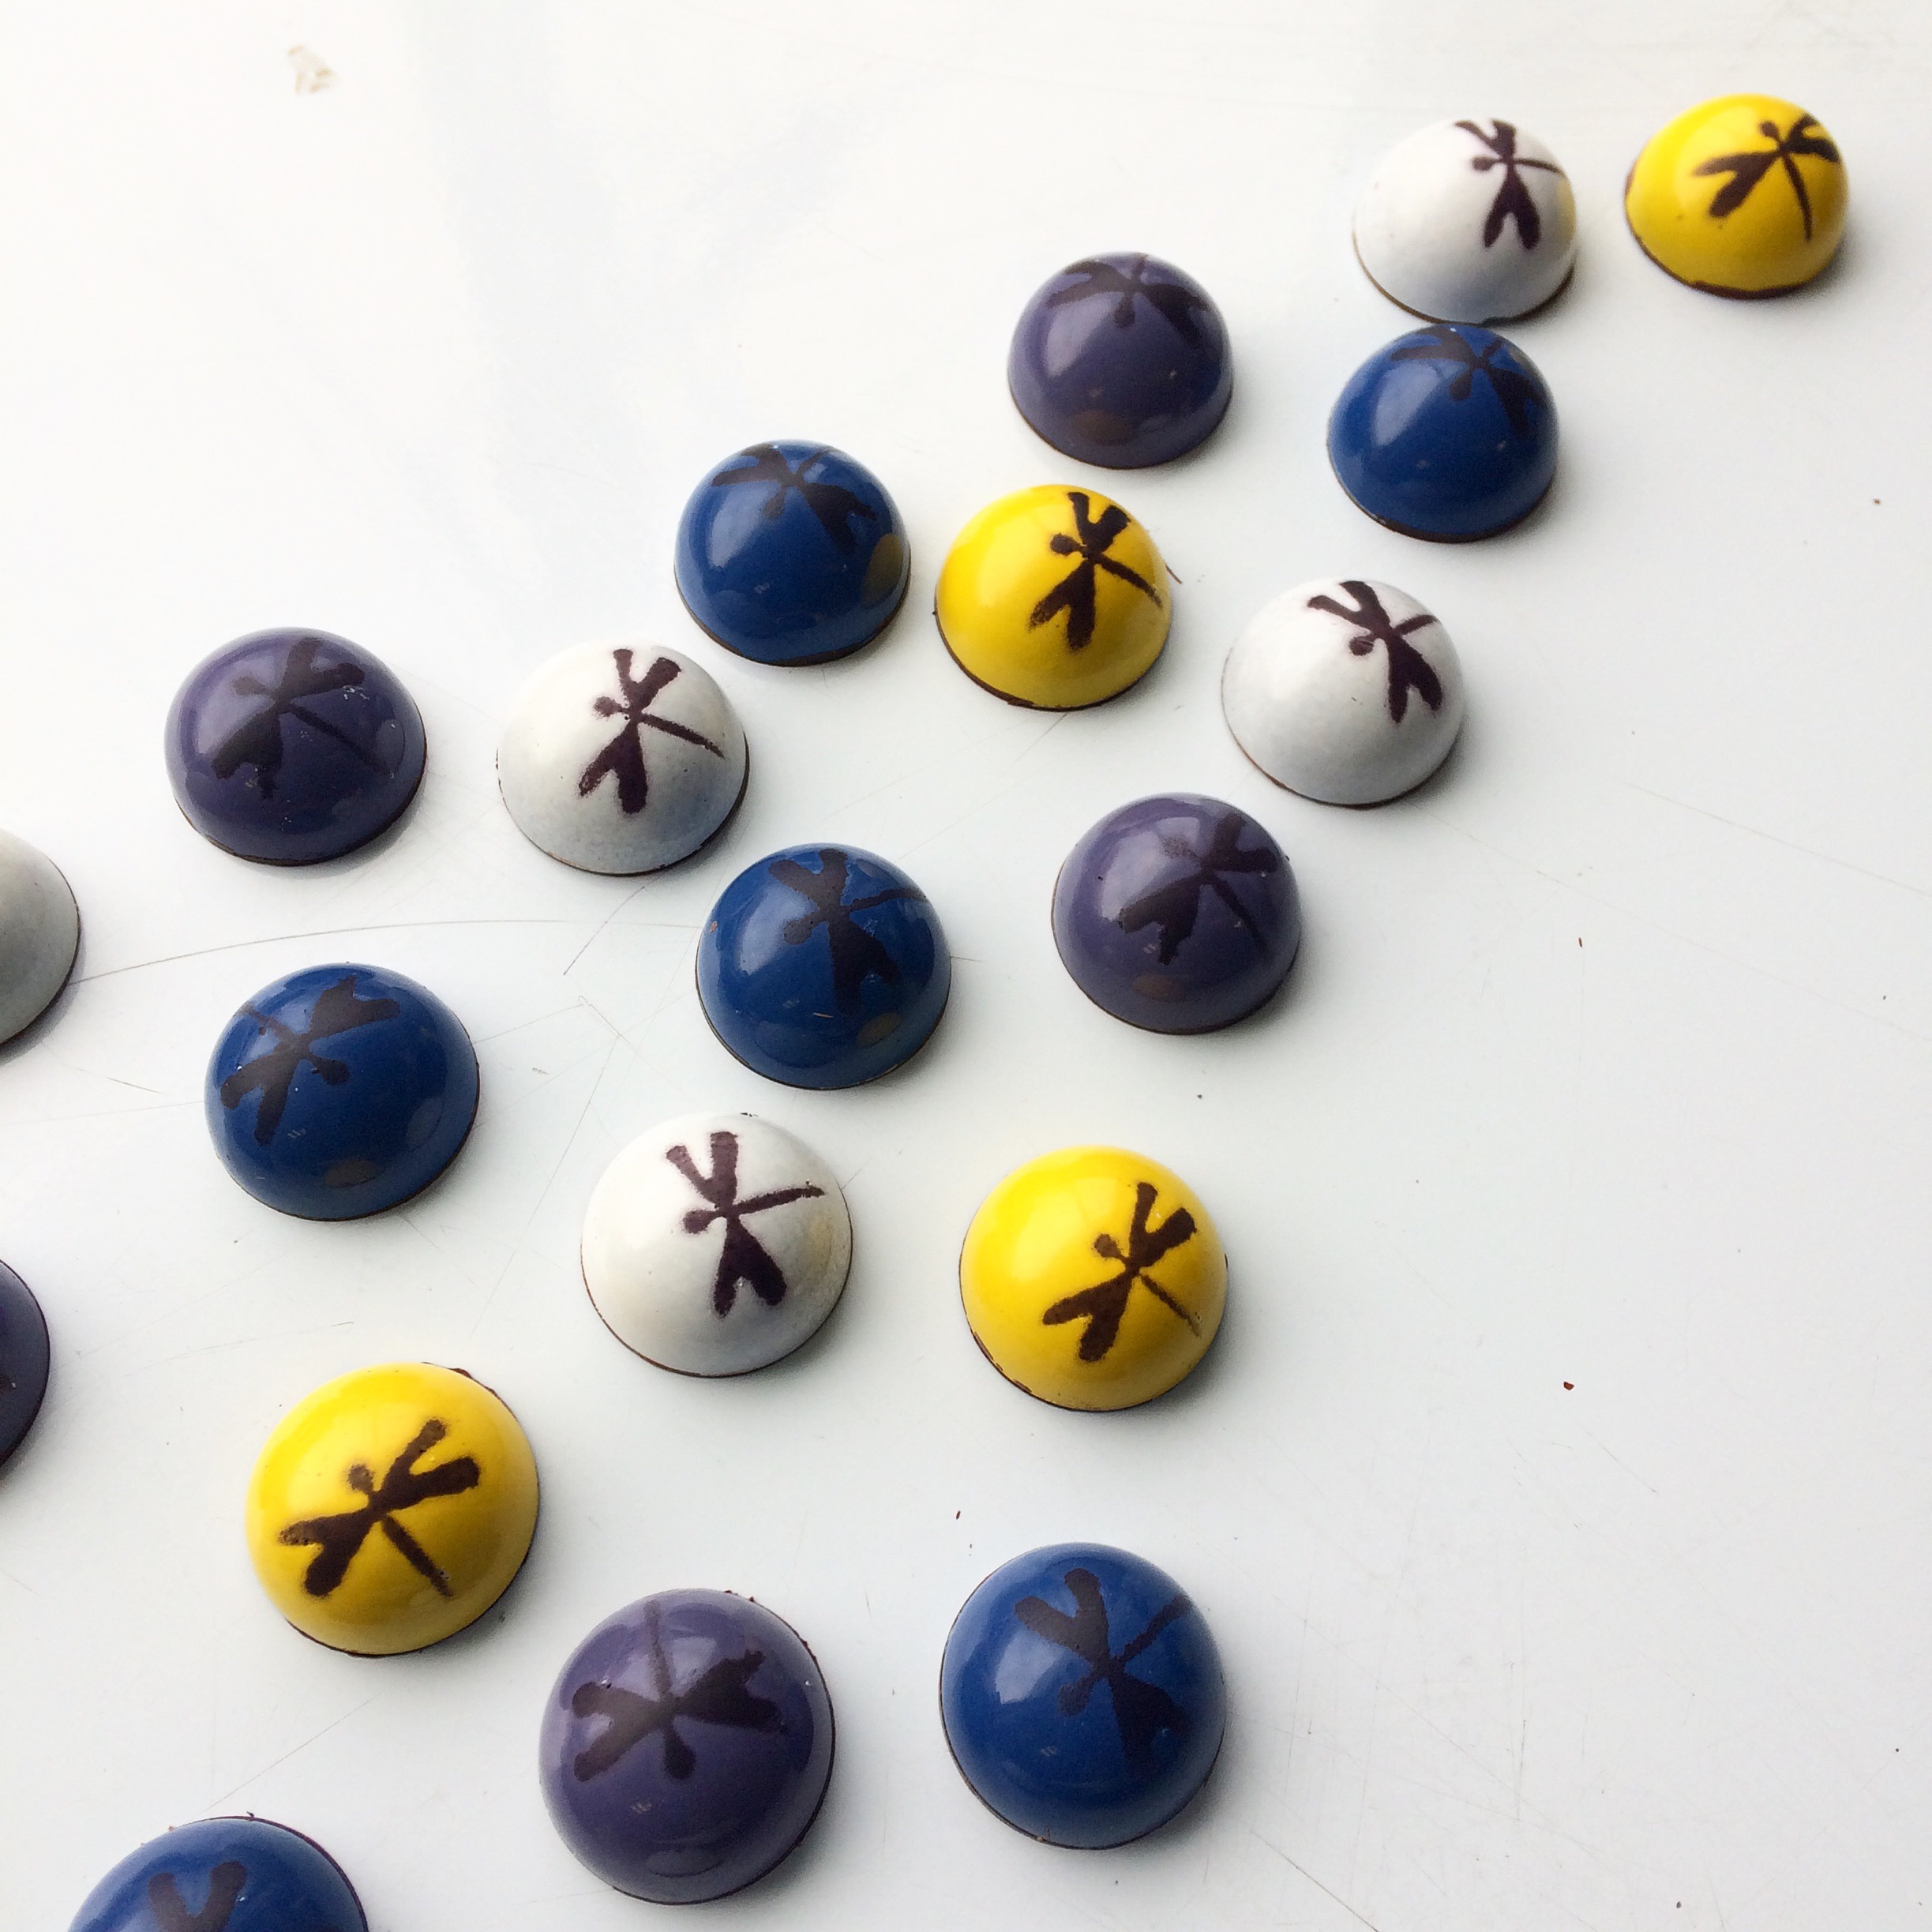 Dragonfly chocolates by Seed Confections